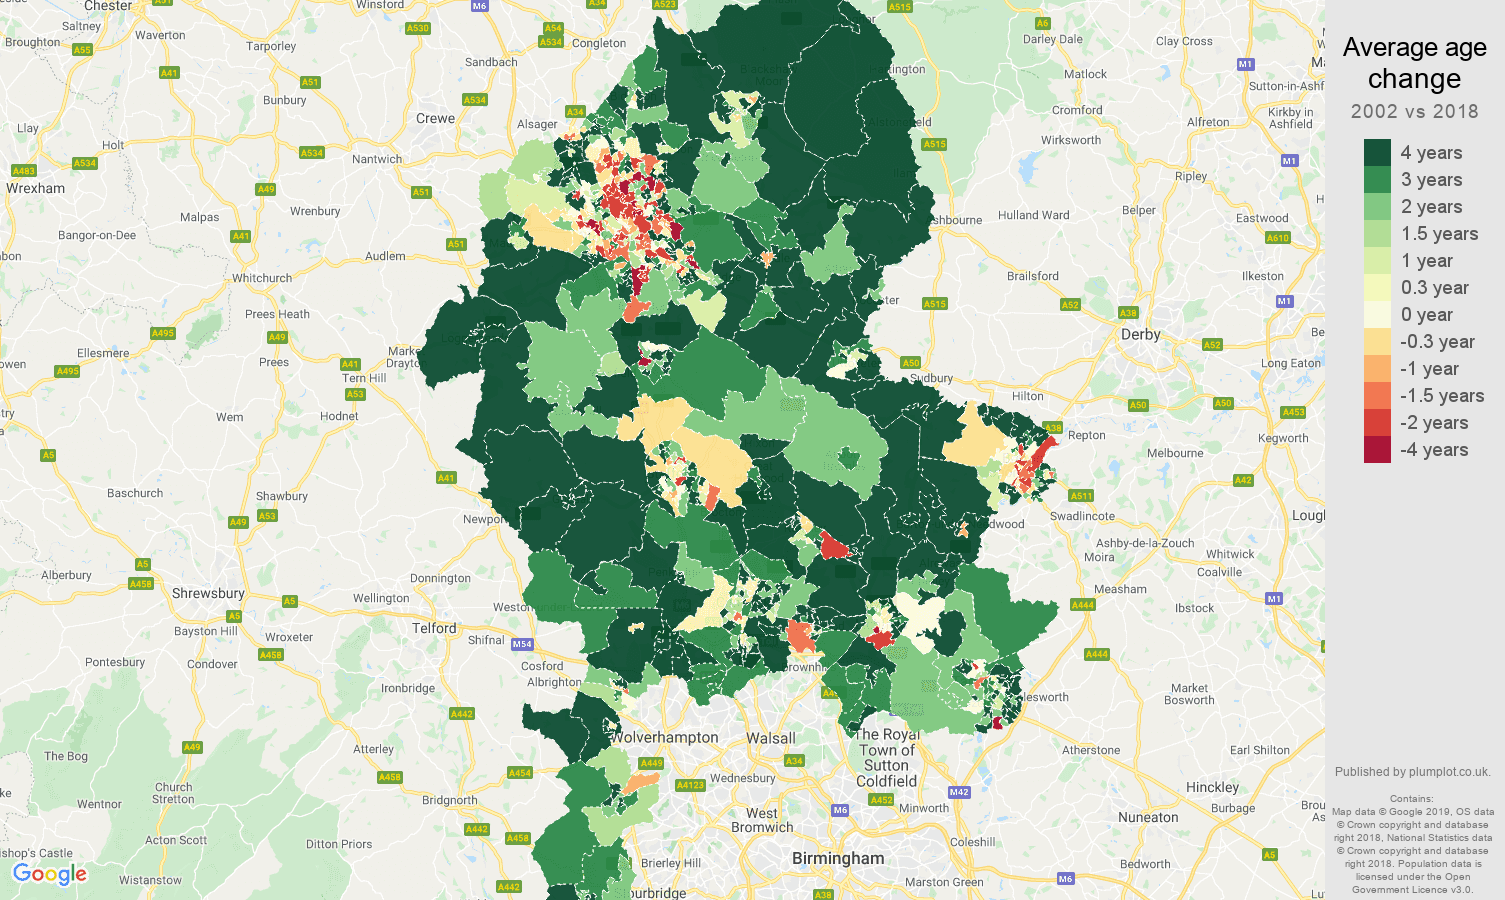 Staffordshire average age change map